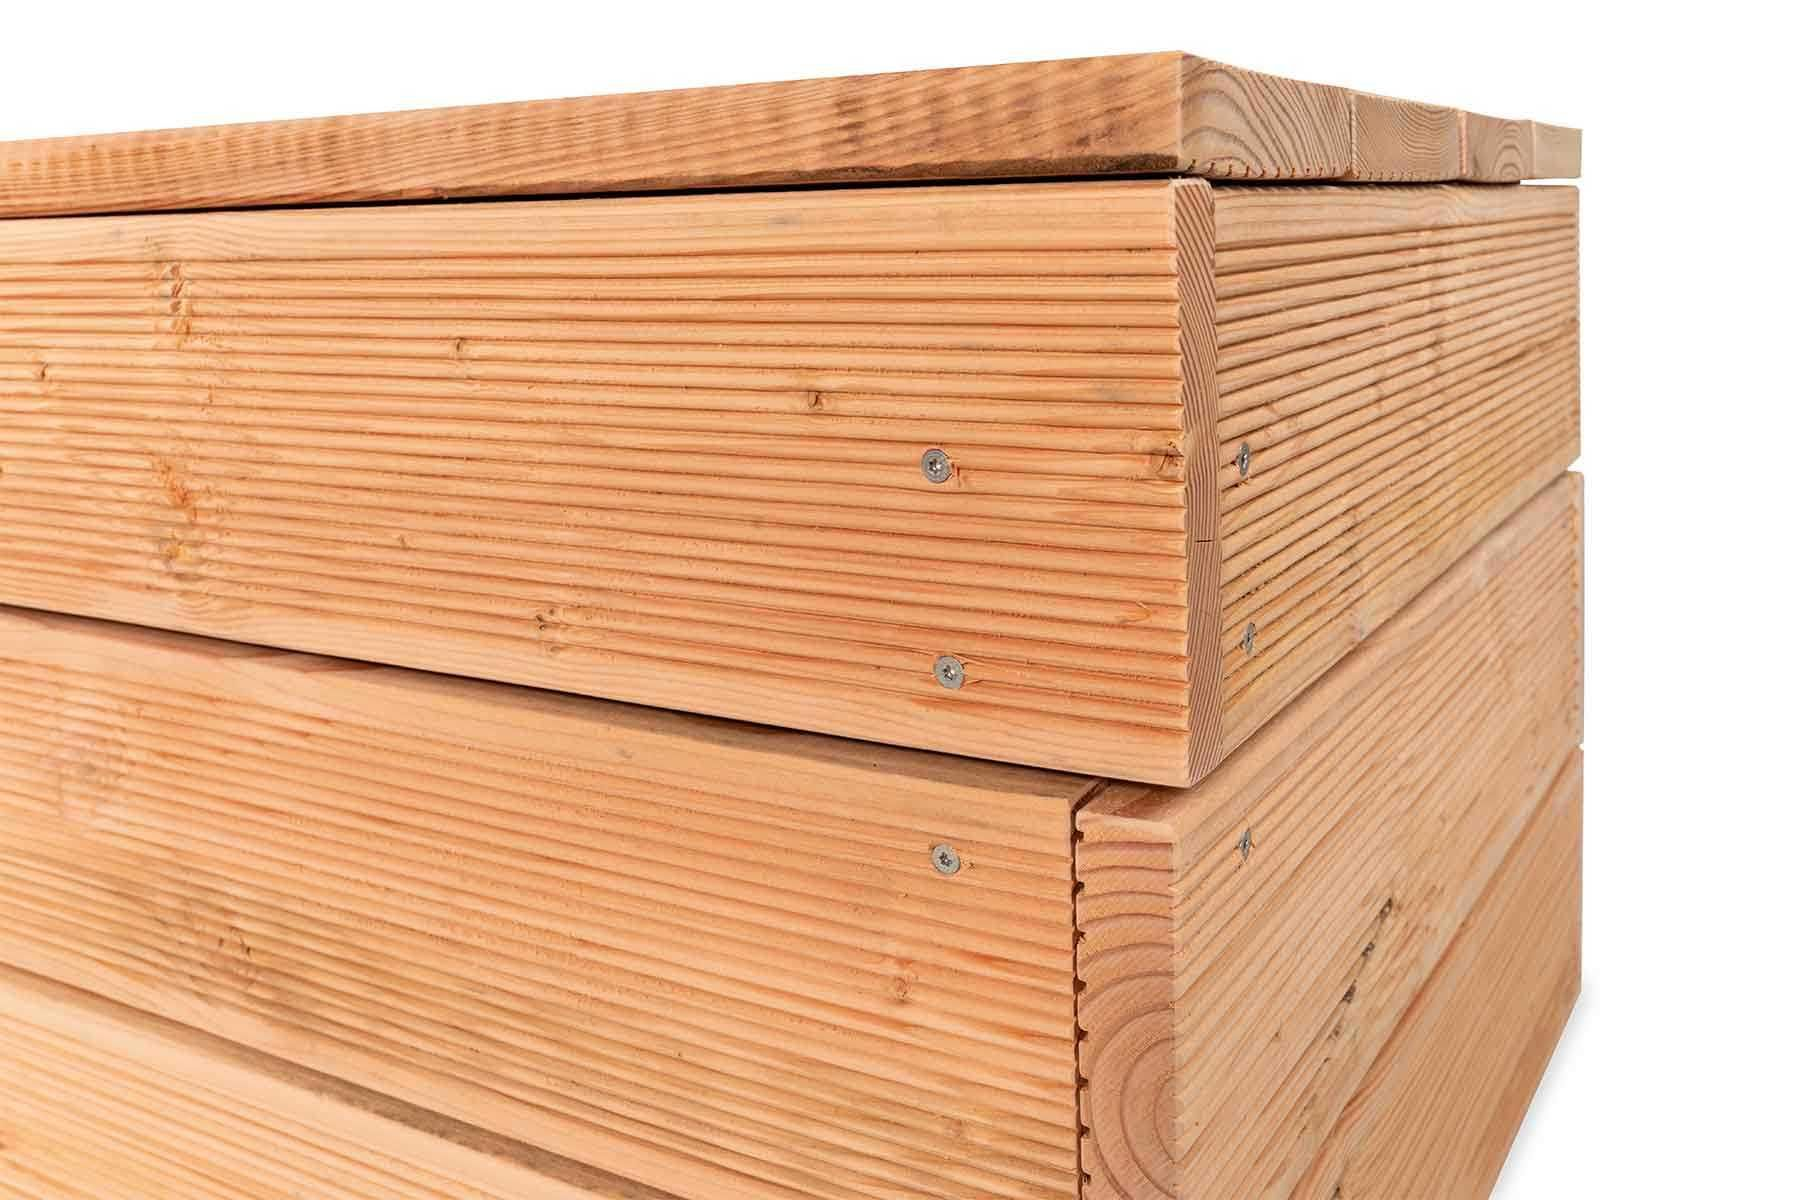 Bank Alfred Selber Bauen Alle Mobel Create By Obi Selber Bauen Gartenmobel Selber Bauen Obi